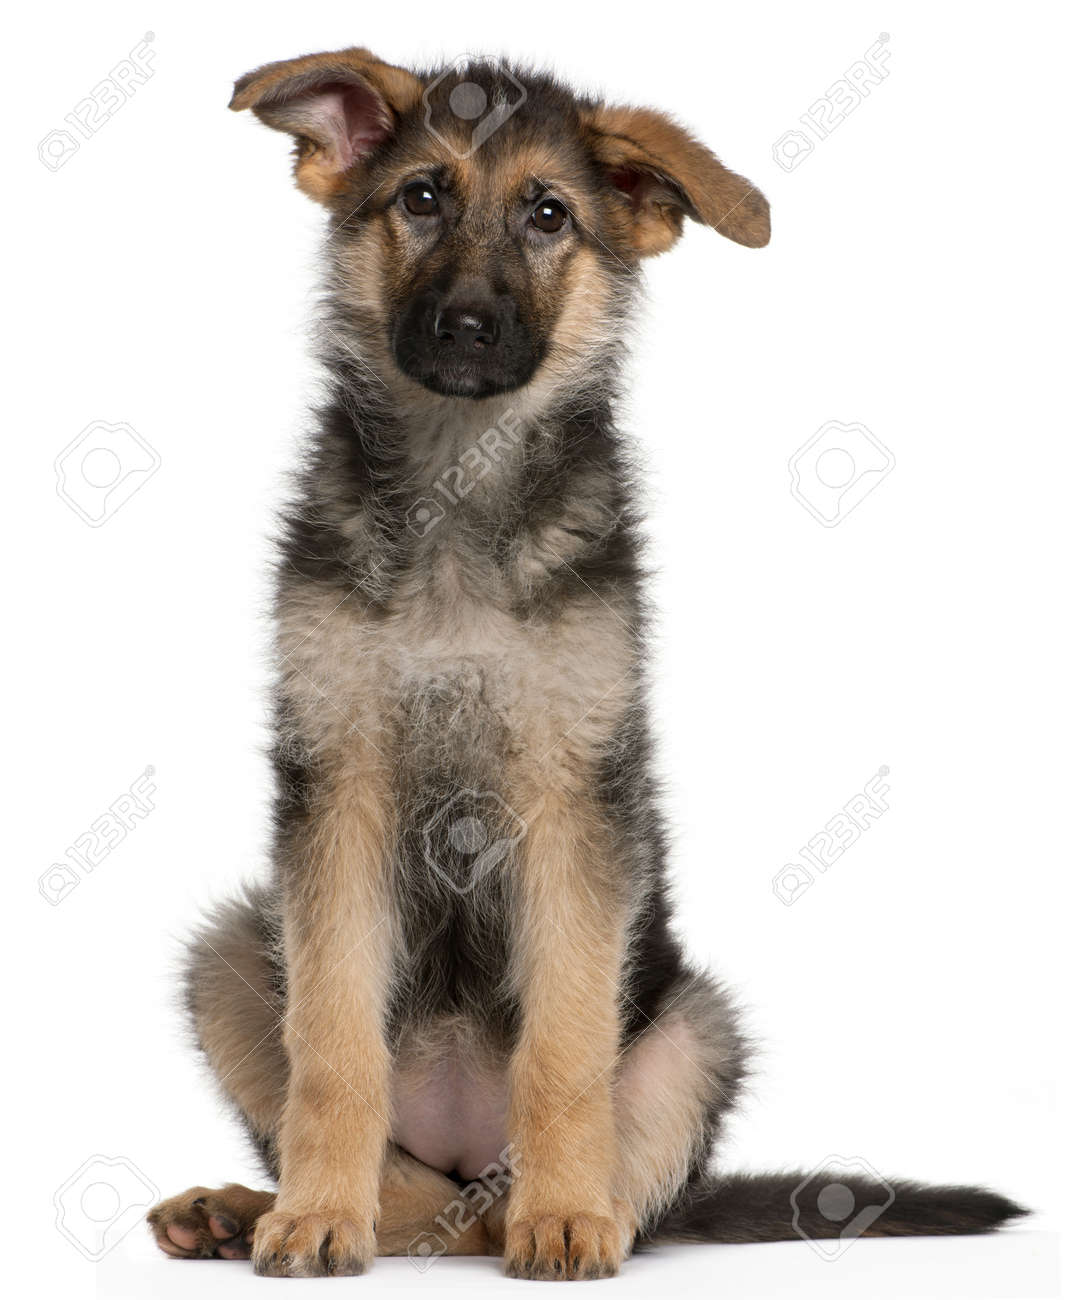 German Shepherd puppy, 4 months old, sitting in front of white background Stock Photo - 8972931